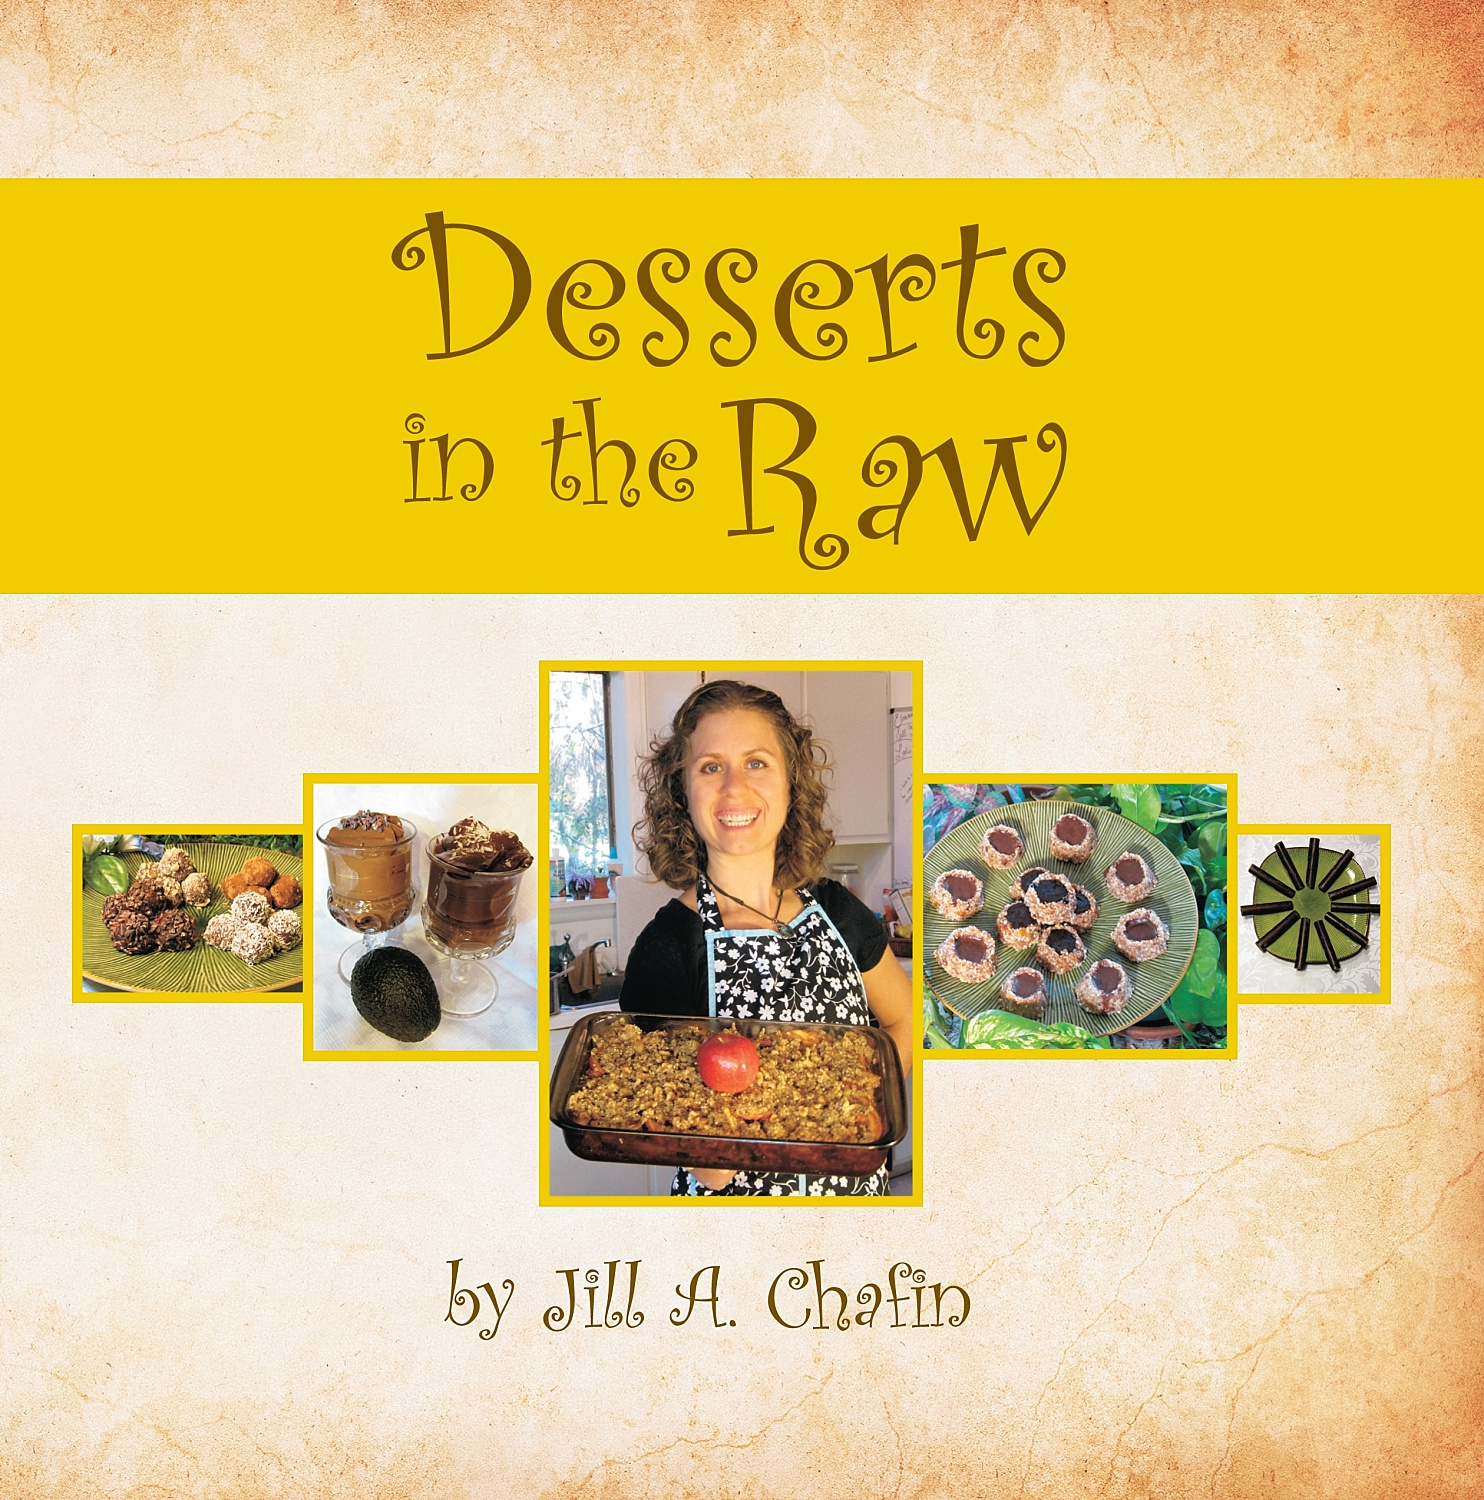 Updated book cover for Desserts in the Raw